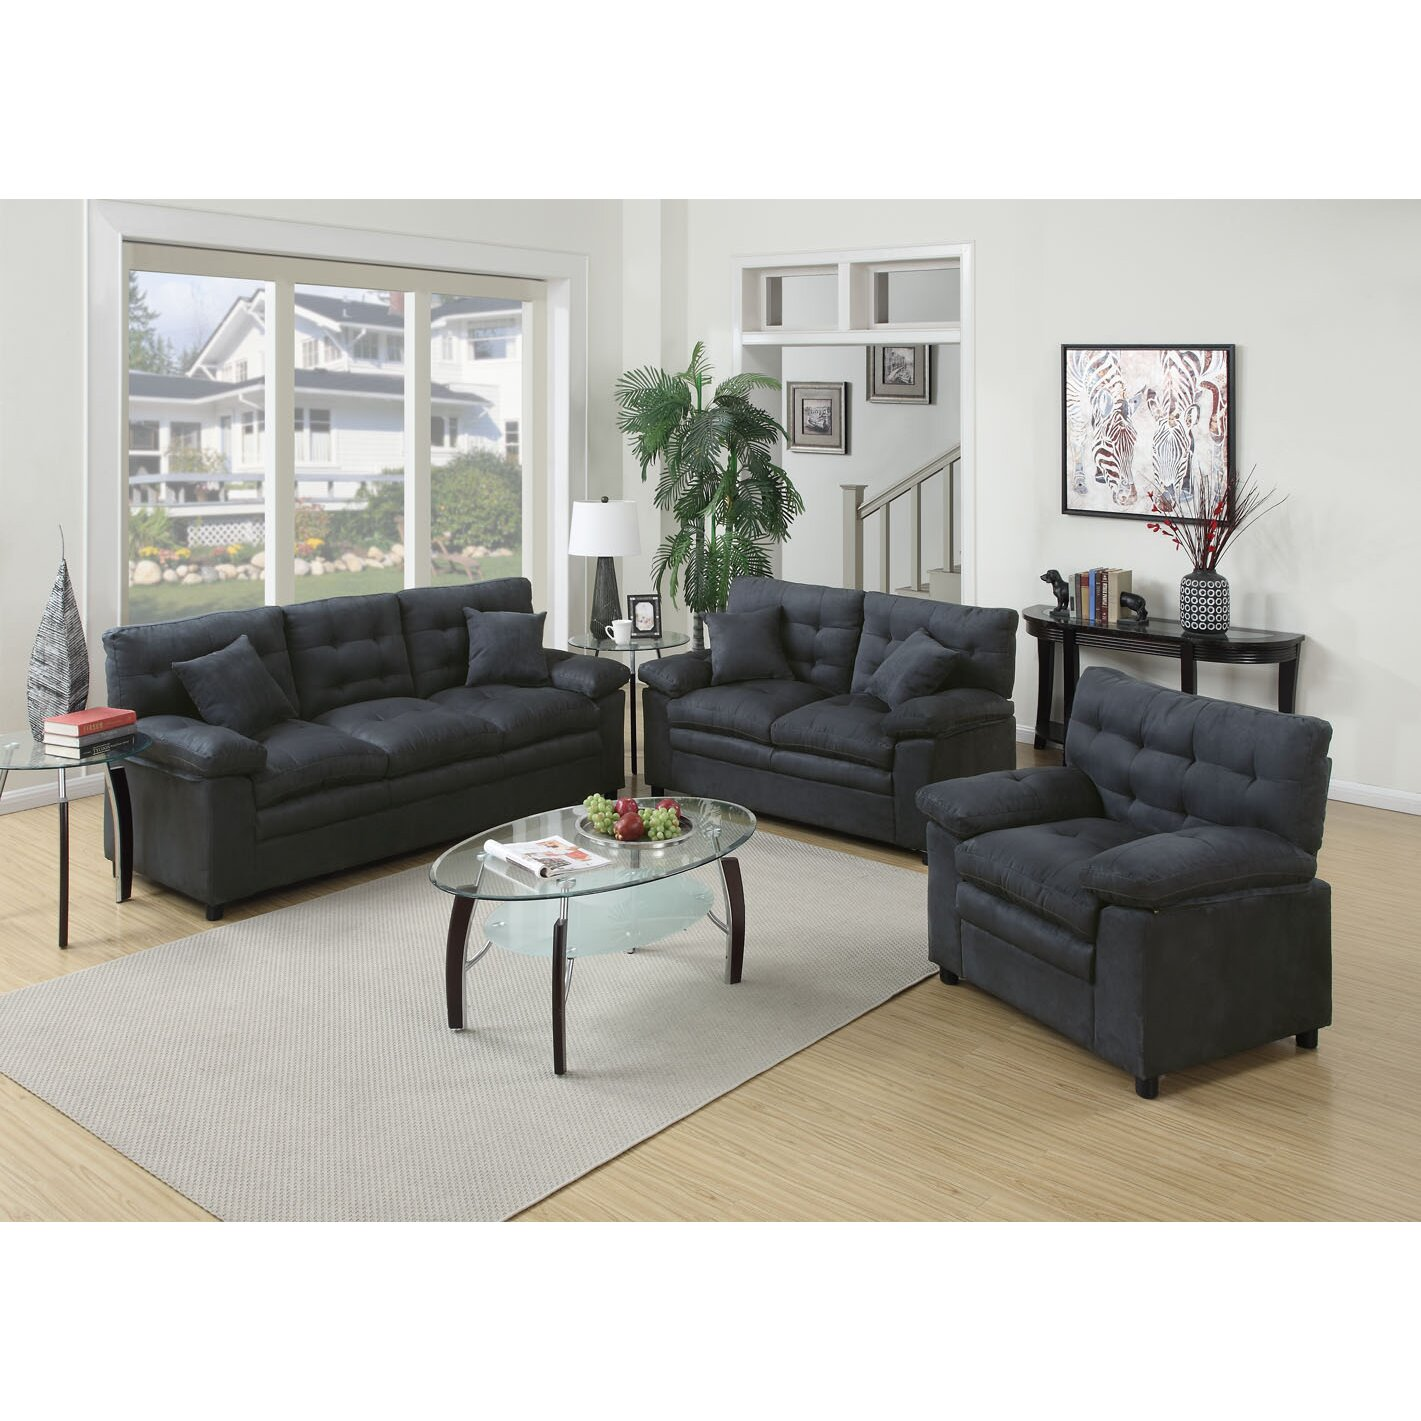 Poundex Bobkona Colona 3 Piece Living Room Set Amp Reviews